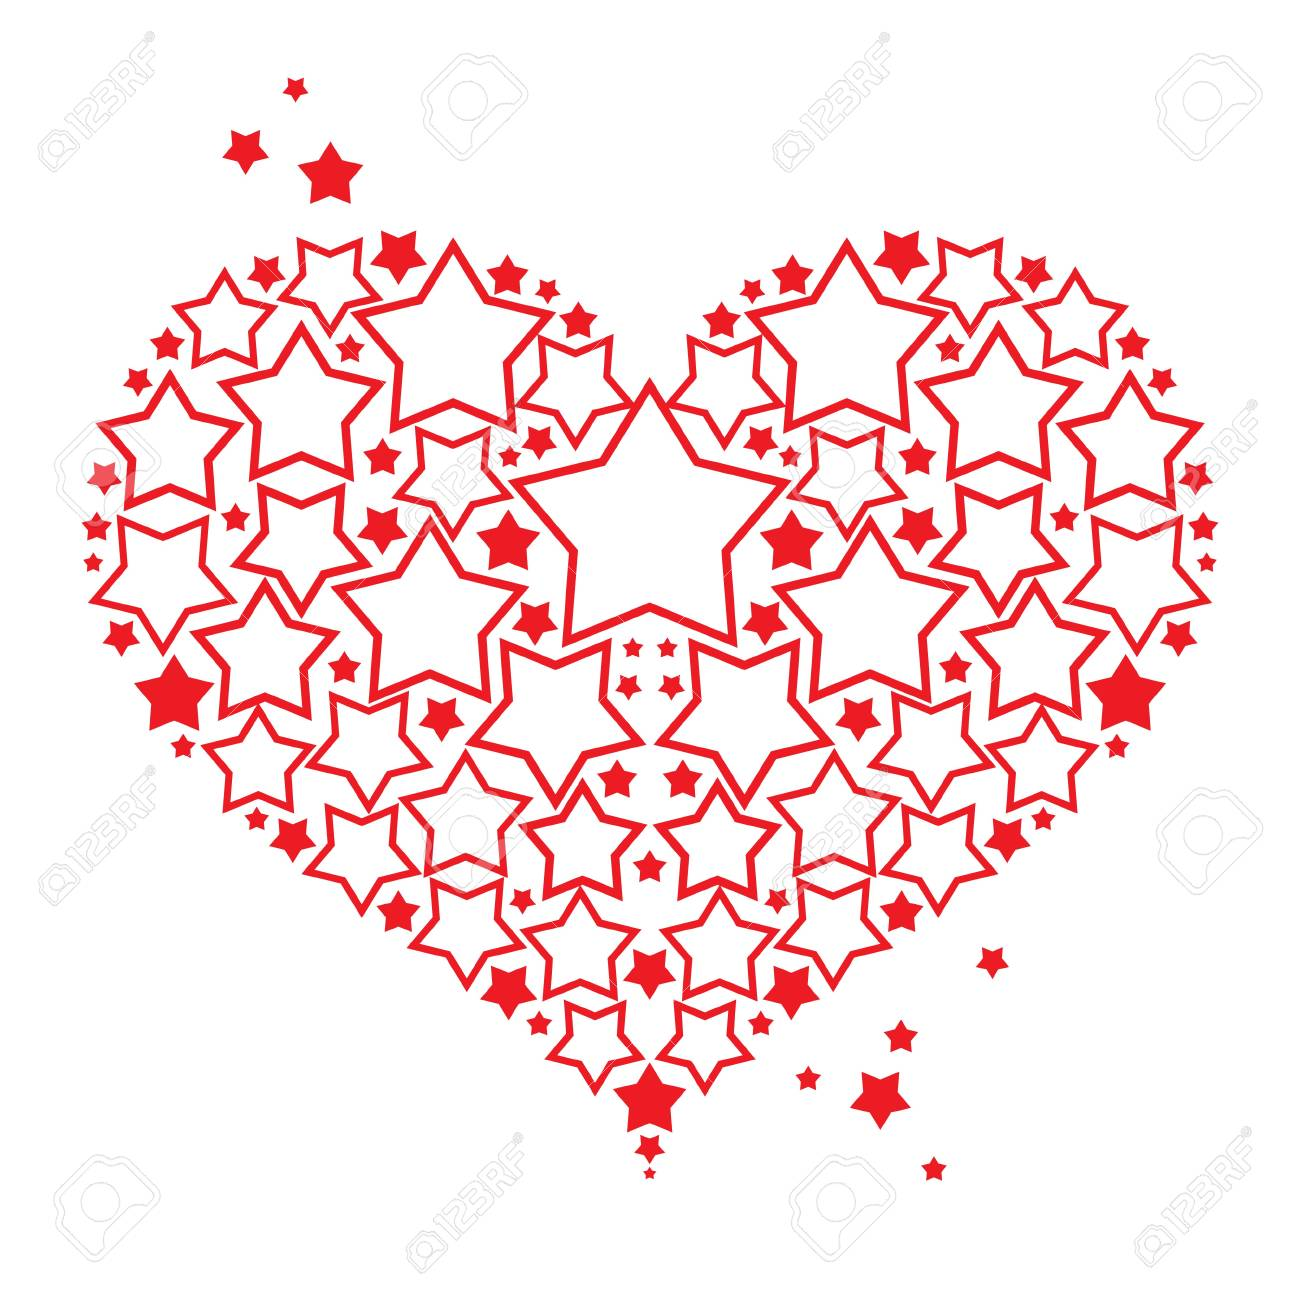 Love symbol red Heart with stars decorative element Valentines day postcard Stock Vector - 11915399